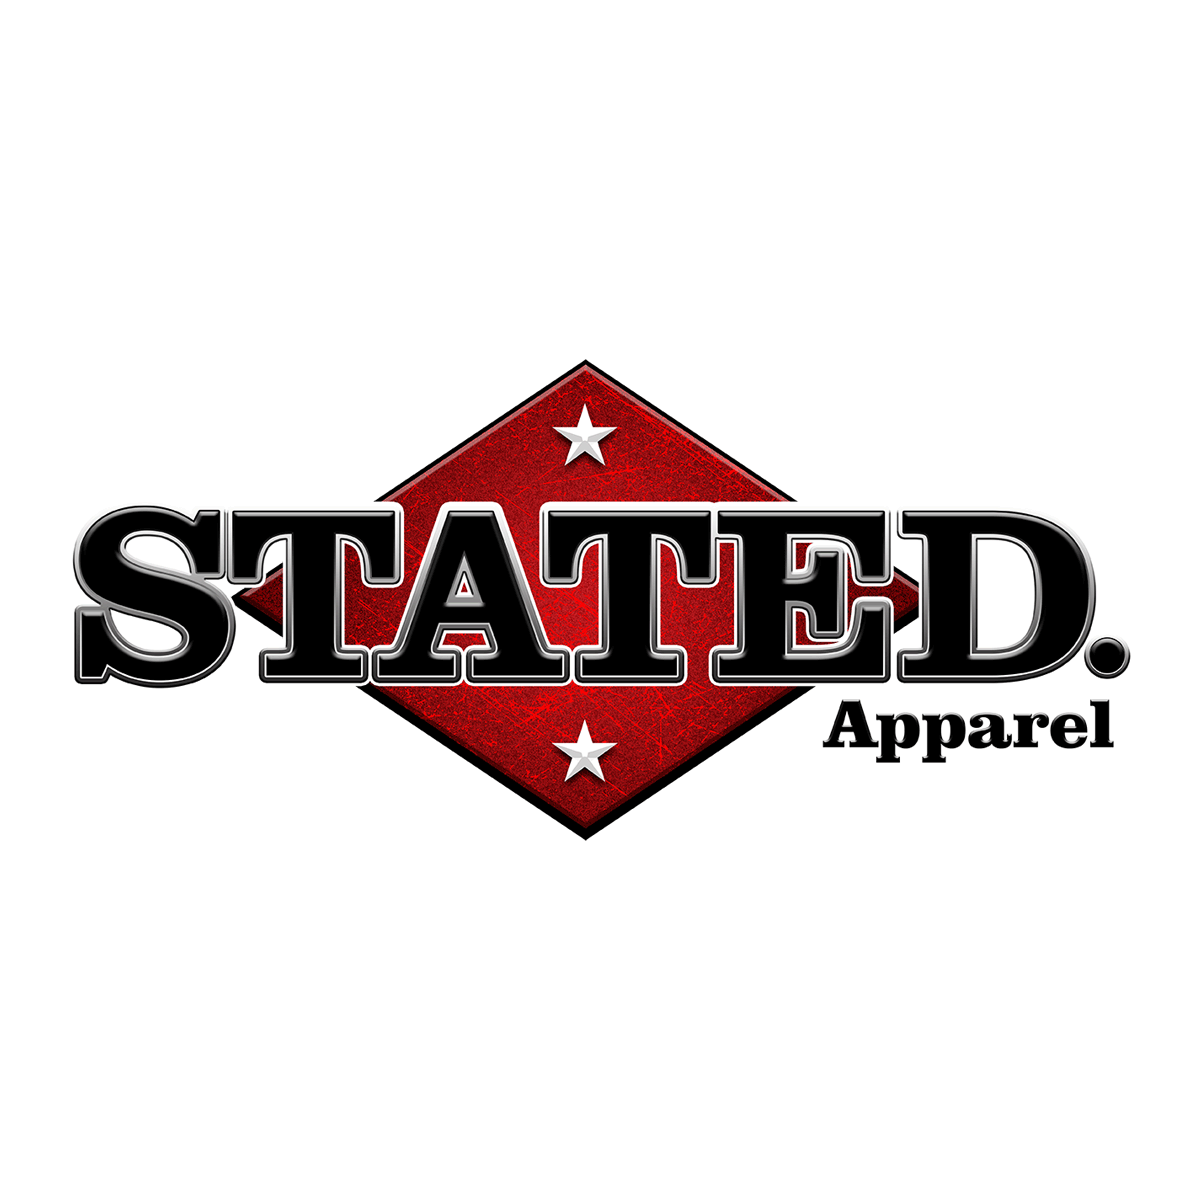 Stated Apparel